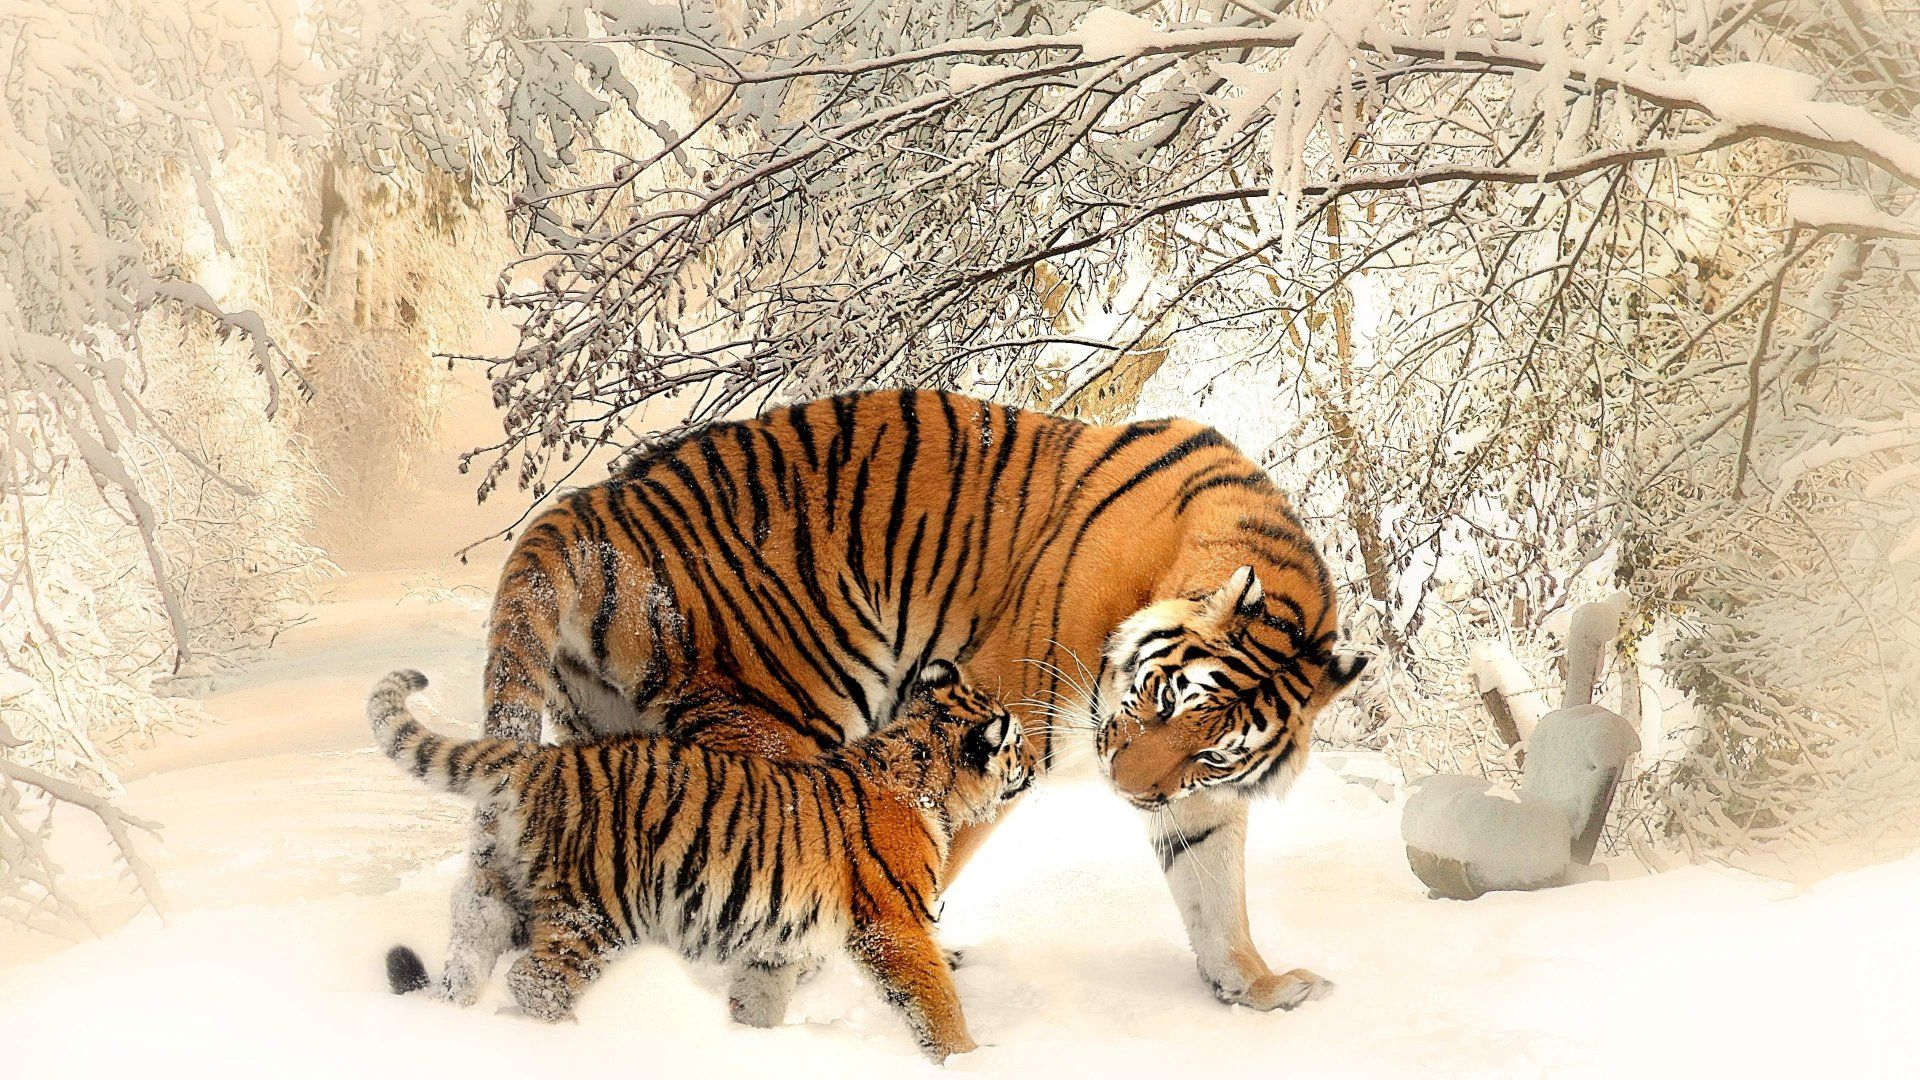 siberian tiger snow wallpaper - 2018 wallpapers hd | pinterest